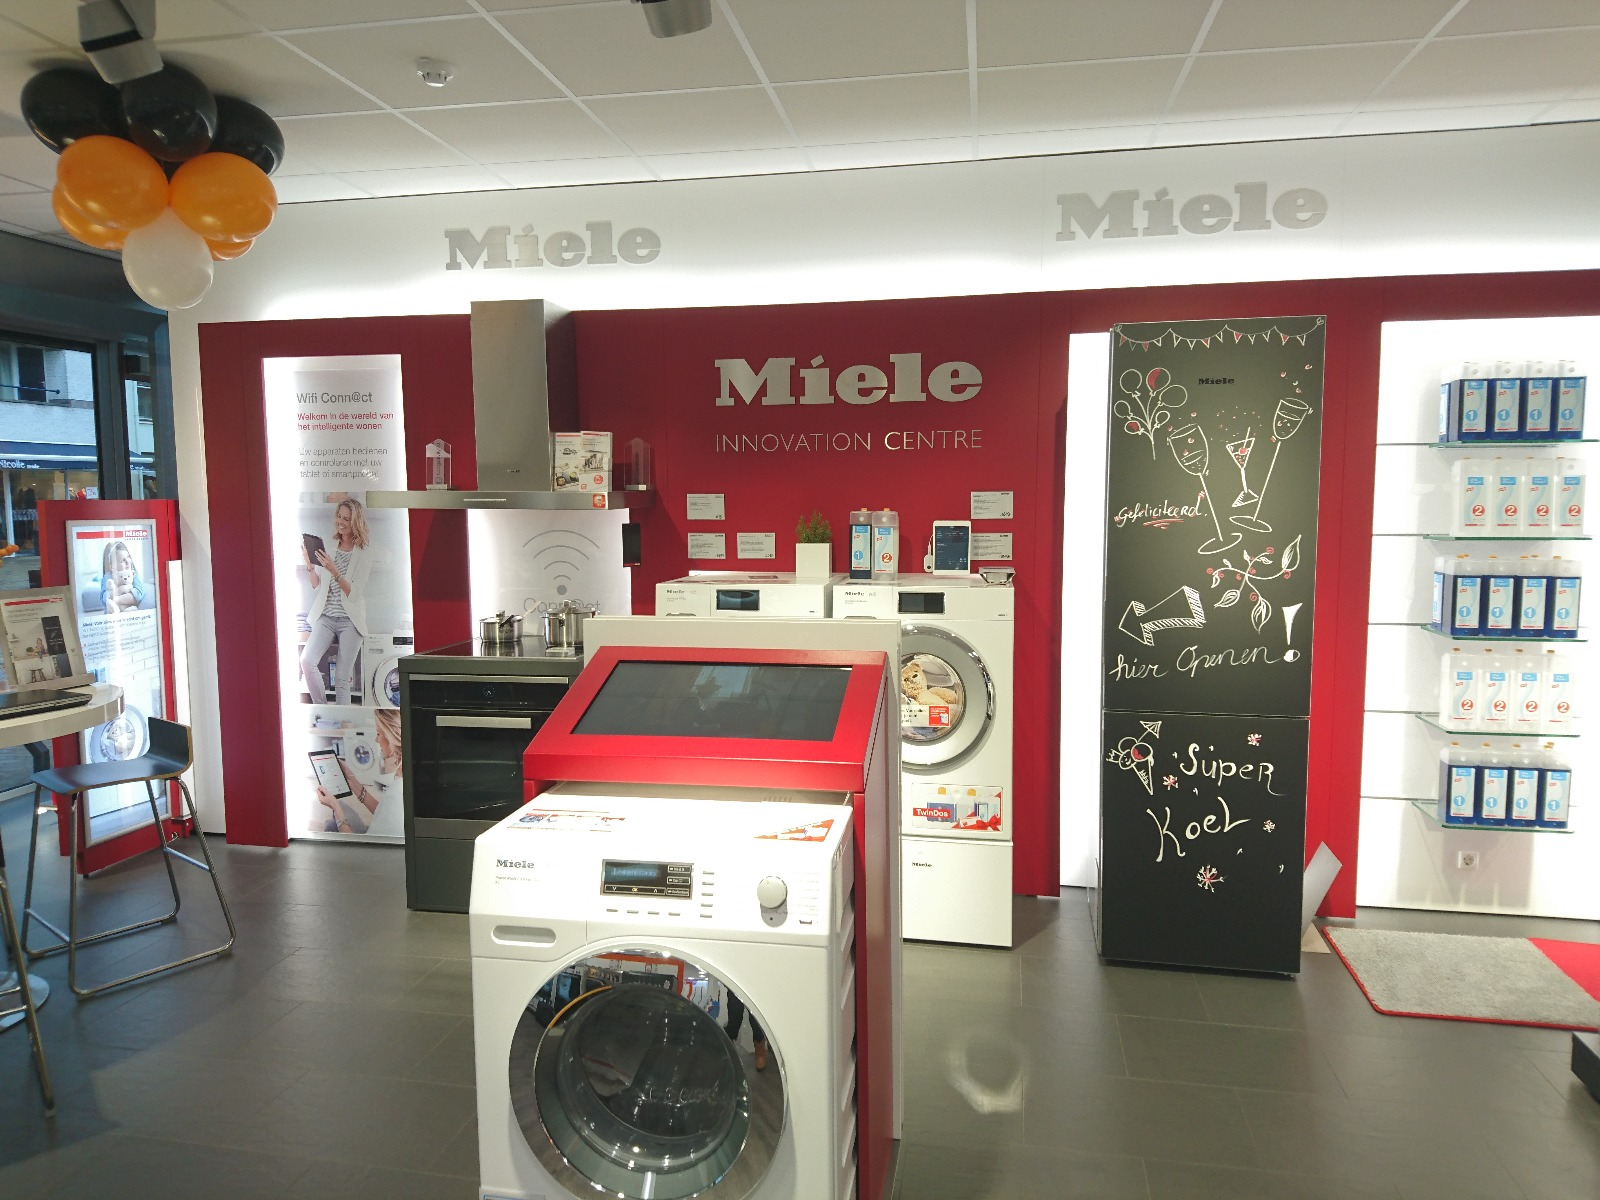 Miele Innovation Centre